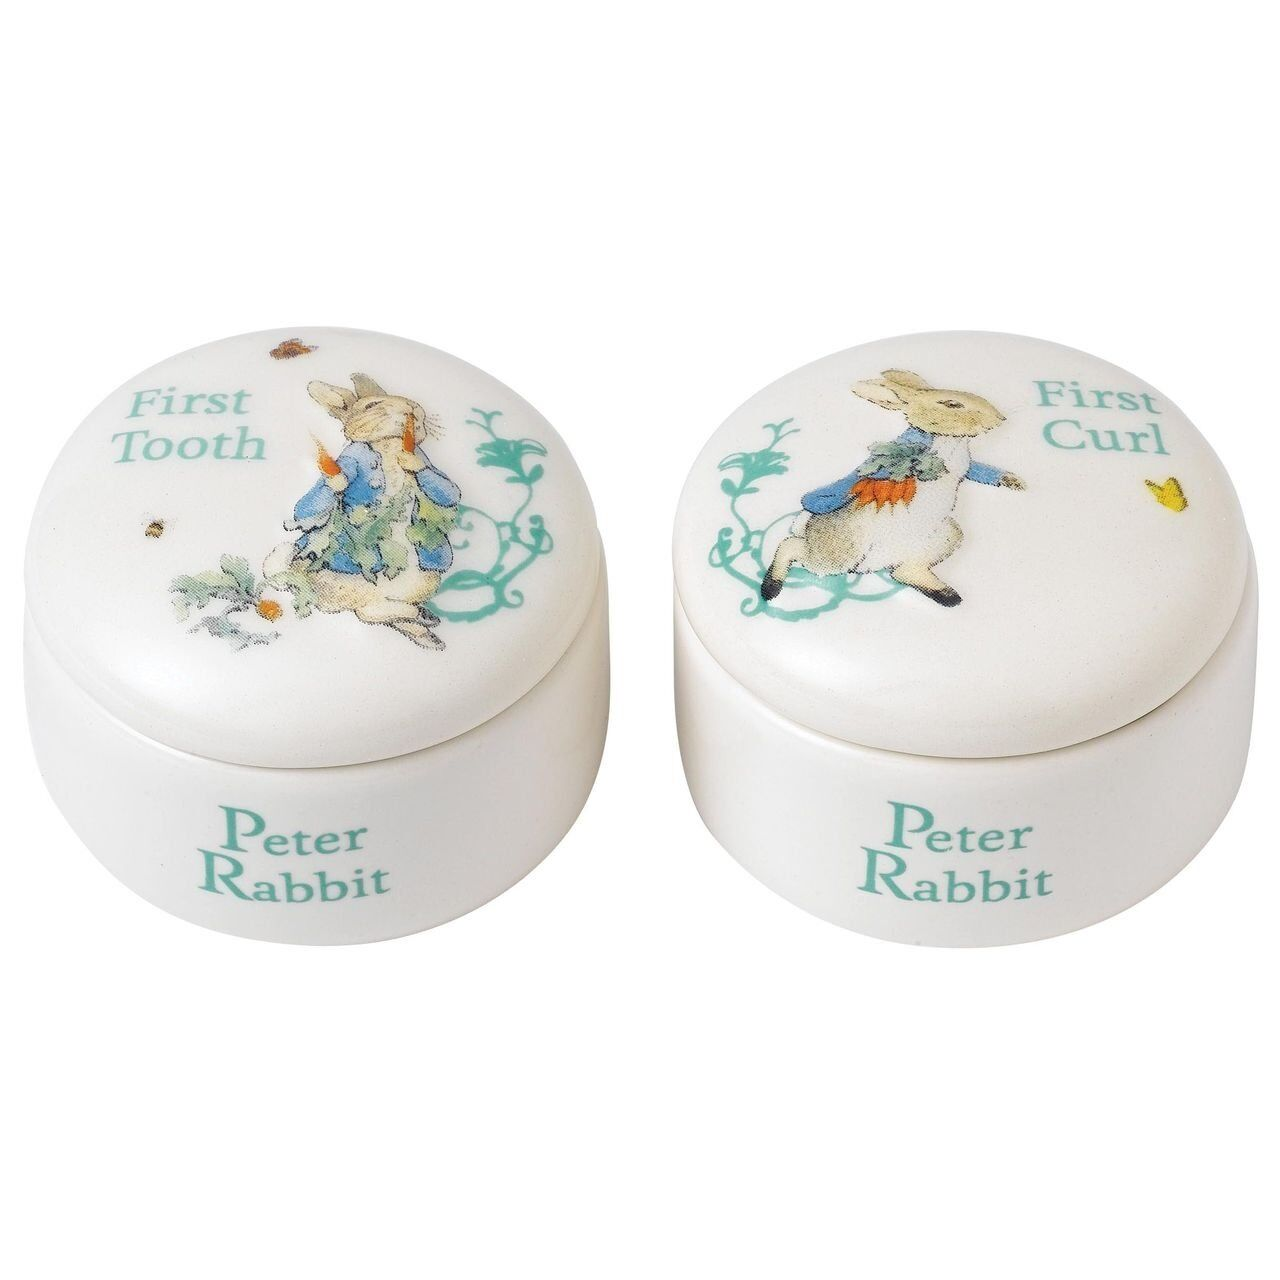 Beatrix Potter Baby Gifts Australia : Beatrix potter peter rabbit tooth curl box baby